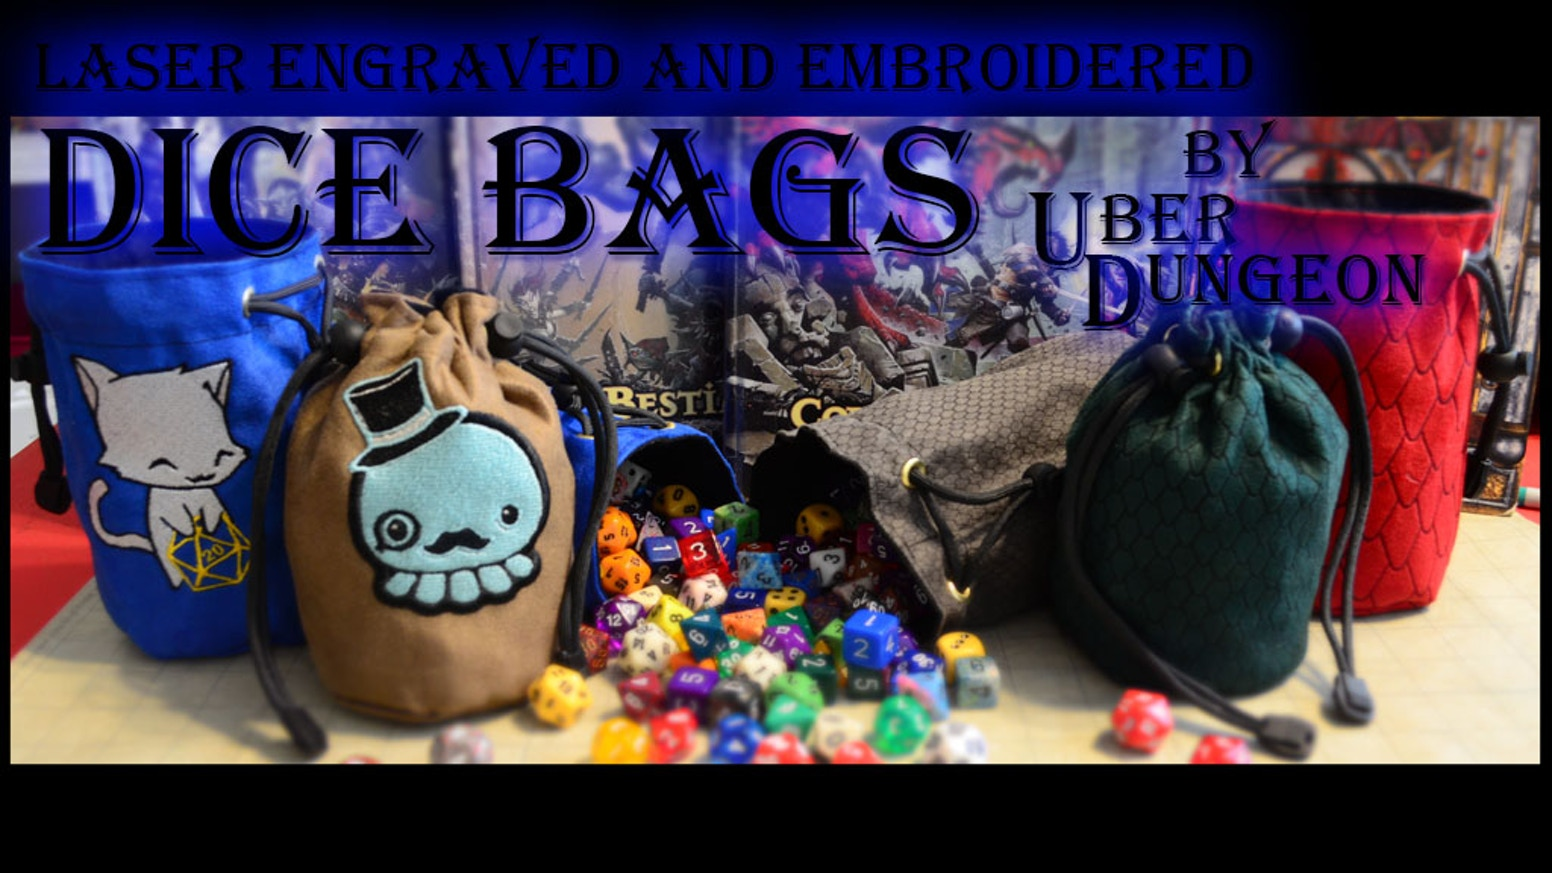 Get creatures of the gaming world embroidered on you dice bag or pick up a classy Laser engraved Dragon Scale Dice Bag.